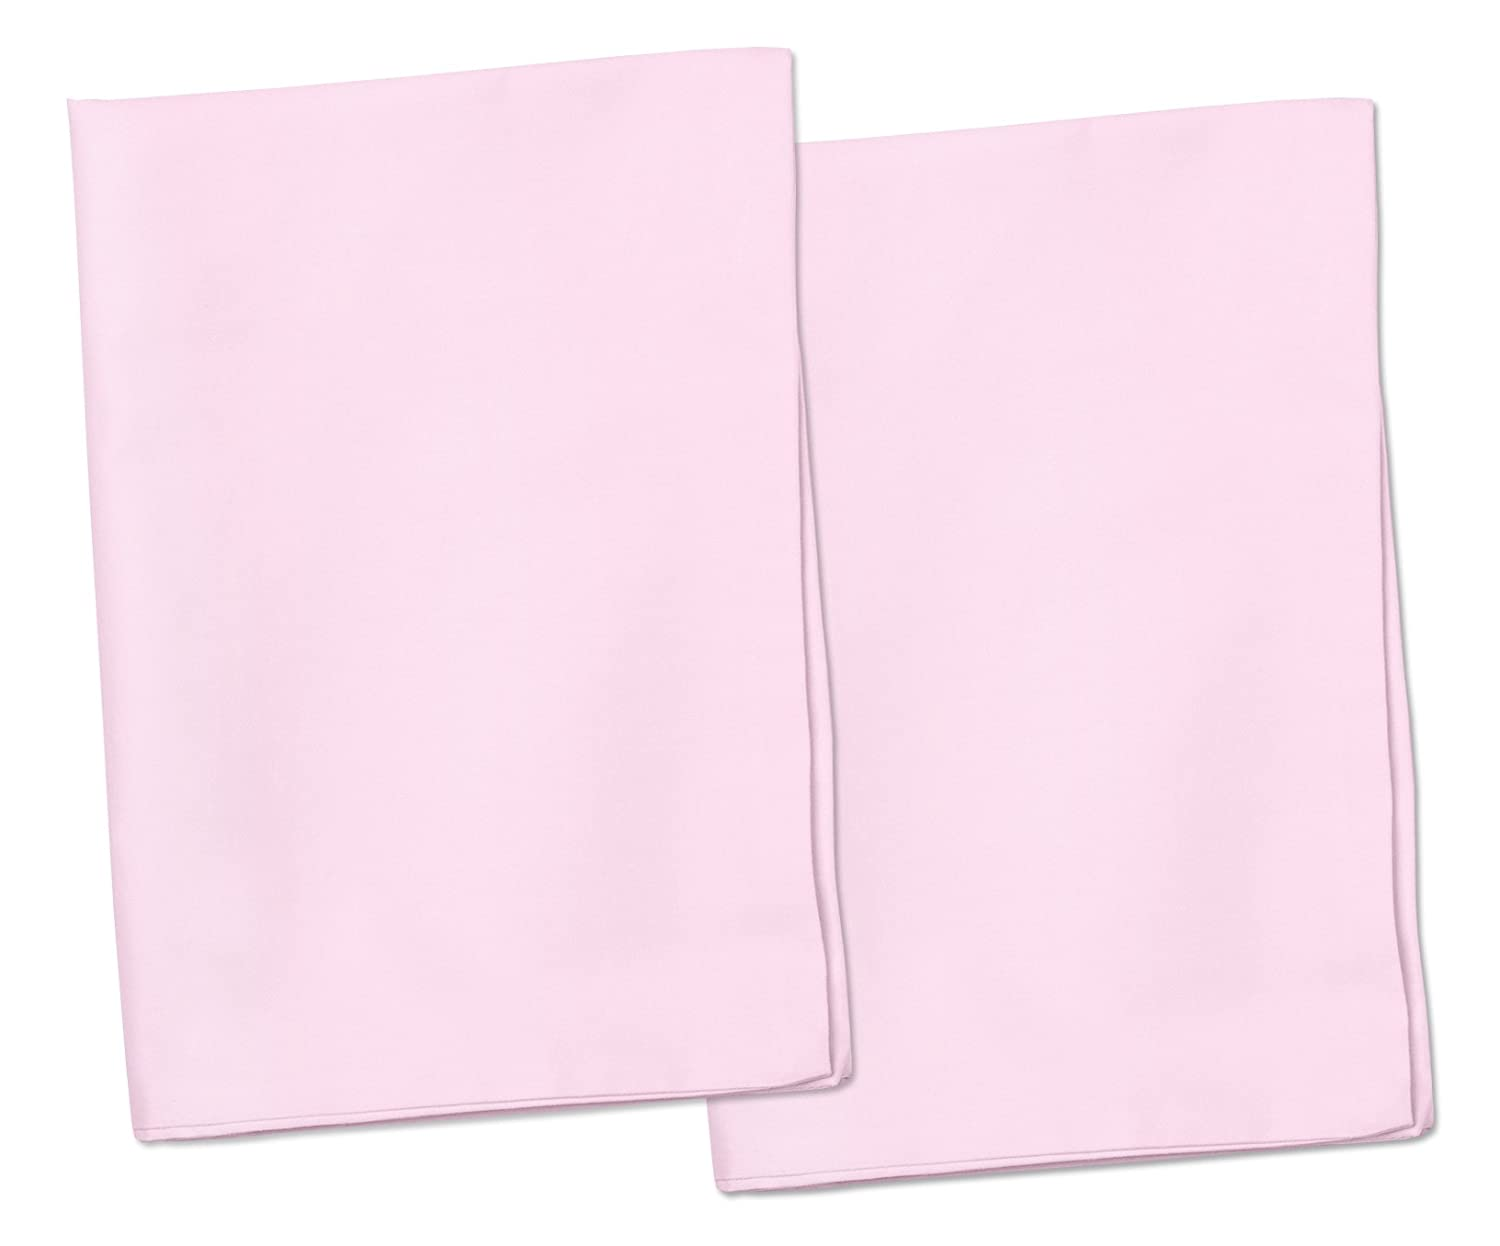 2 Pink Toddler Pillowcases - Envelope Style - For Pillows Sized 13x18 and 14x19 - 100% Cotton With Soft Sateen Weave - Machine Washable ZadisonJaxx ZJP-ZJTPC2PCS